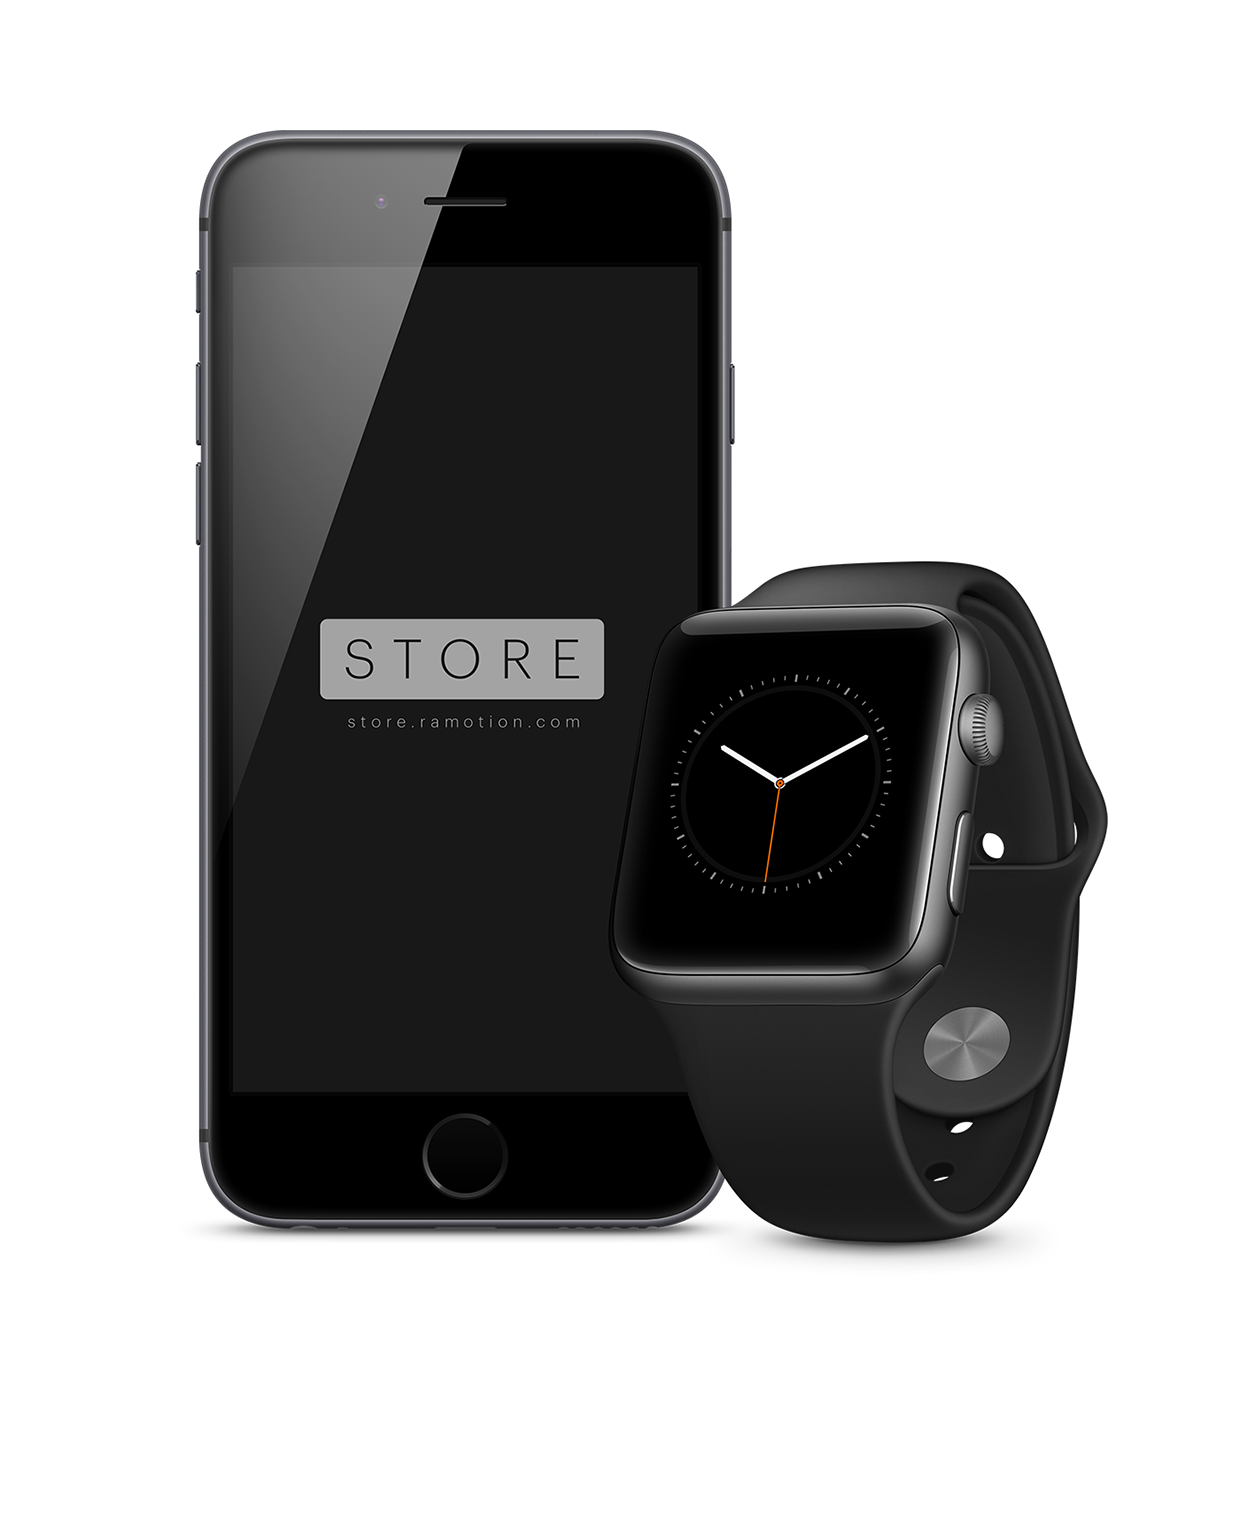 Mockup Gratuit Apple iPhone 6 et Apple Watch - Free Mockup iPhone 6 and Apple Watch - 1